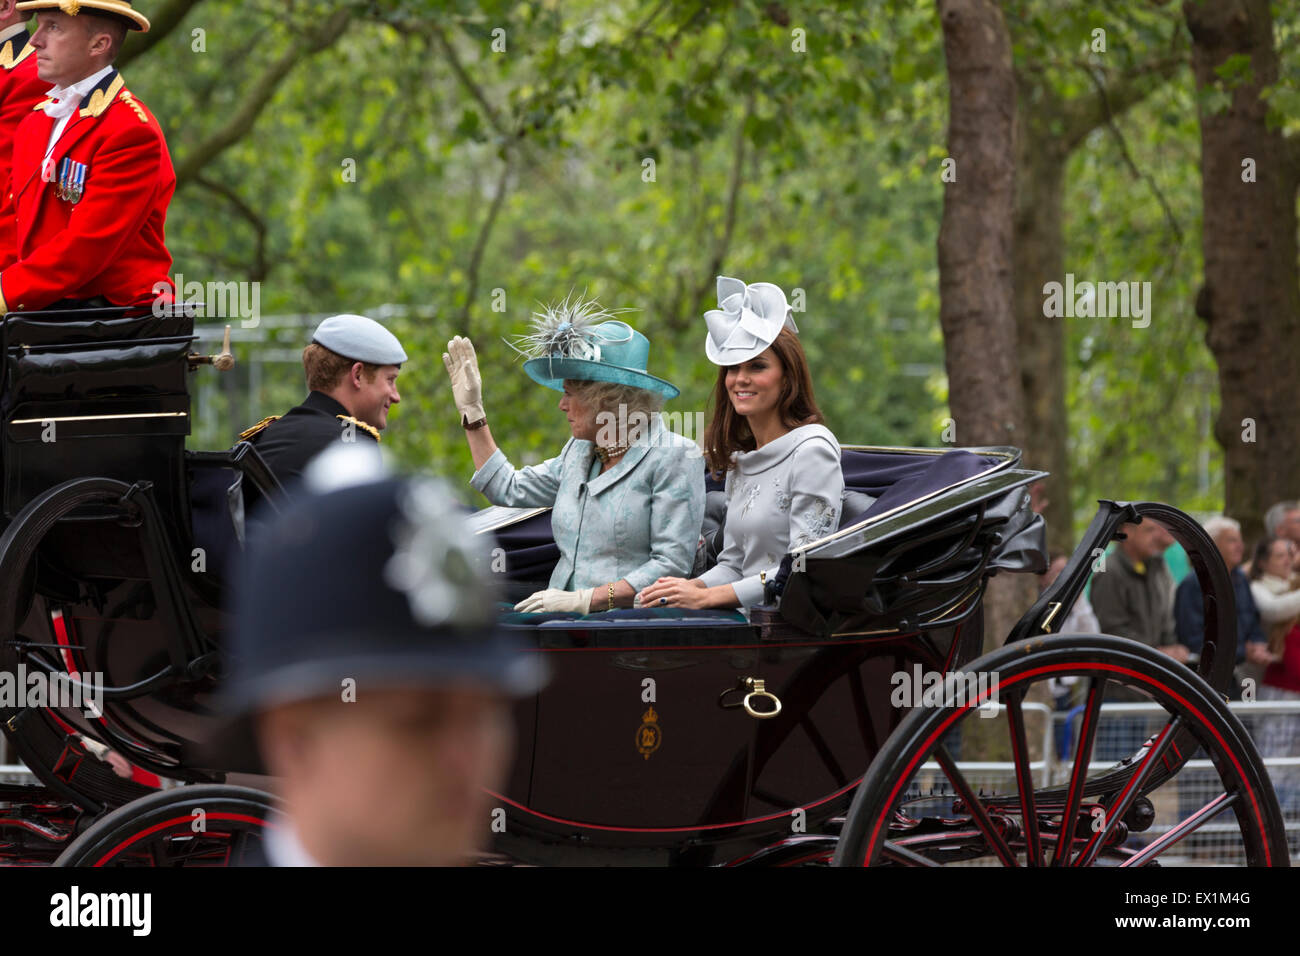 Kate Middleton, Camilla Parker Bowles, & Prince Harry in a carriage en route to the Trooping the Colour ceremony - Stock Image